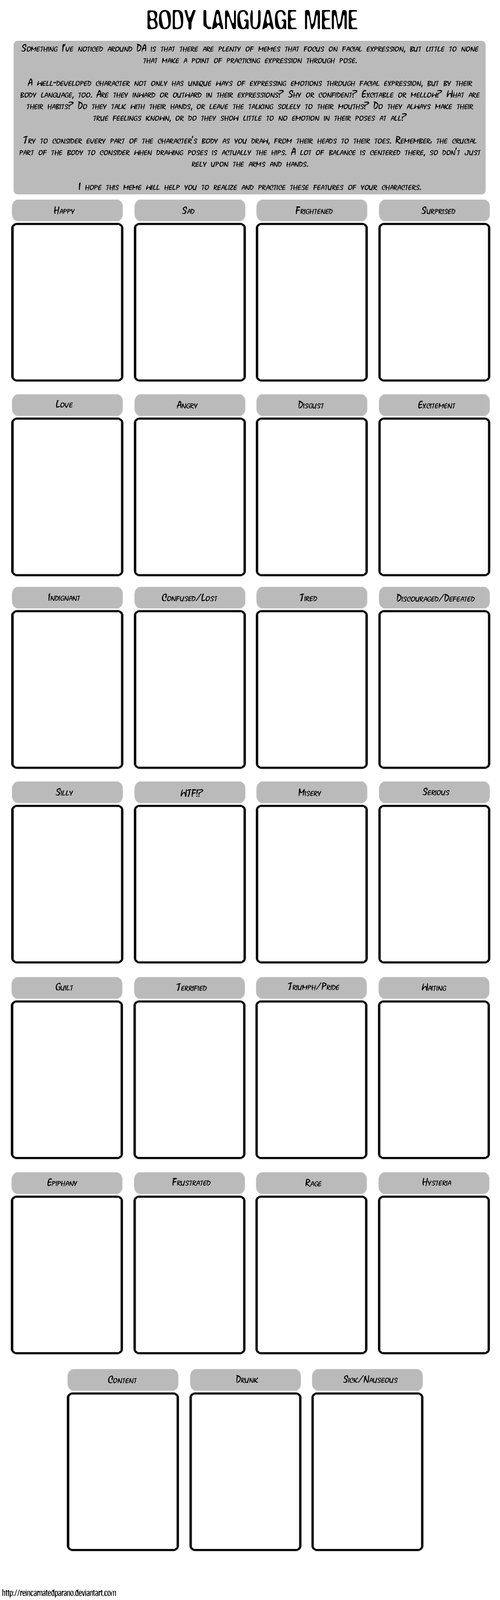 Finished Memes Download For Full Size This Idea Crossed My Mind Recently And I Think It Could Be A Great Help To Those Drawing Meme Art Memes Body Language